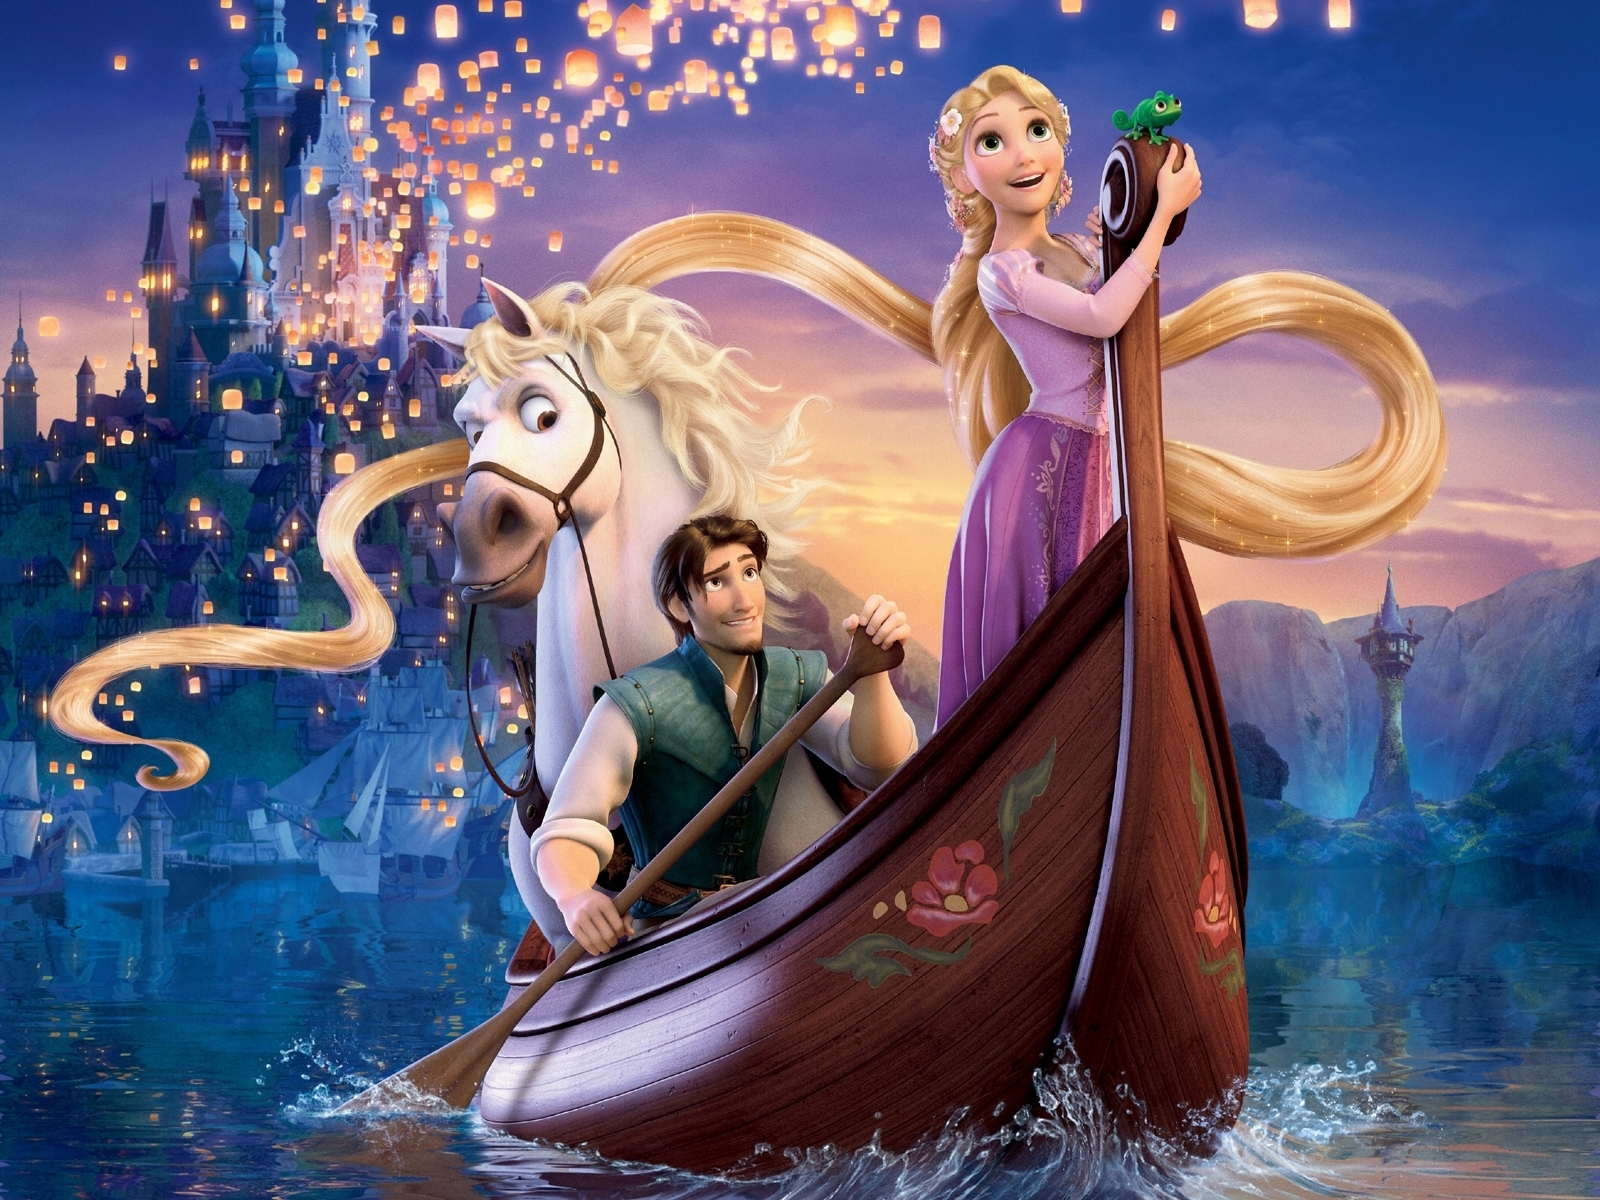 Rapunzel Wallpapers Desktop Wallpapers 1600x1200